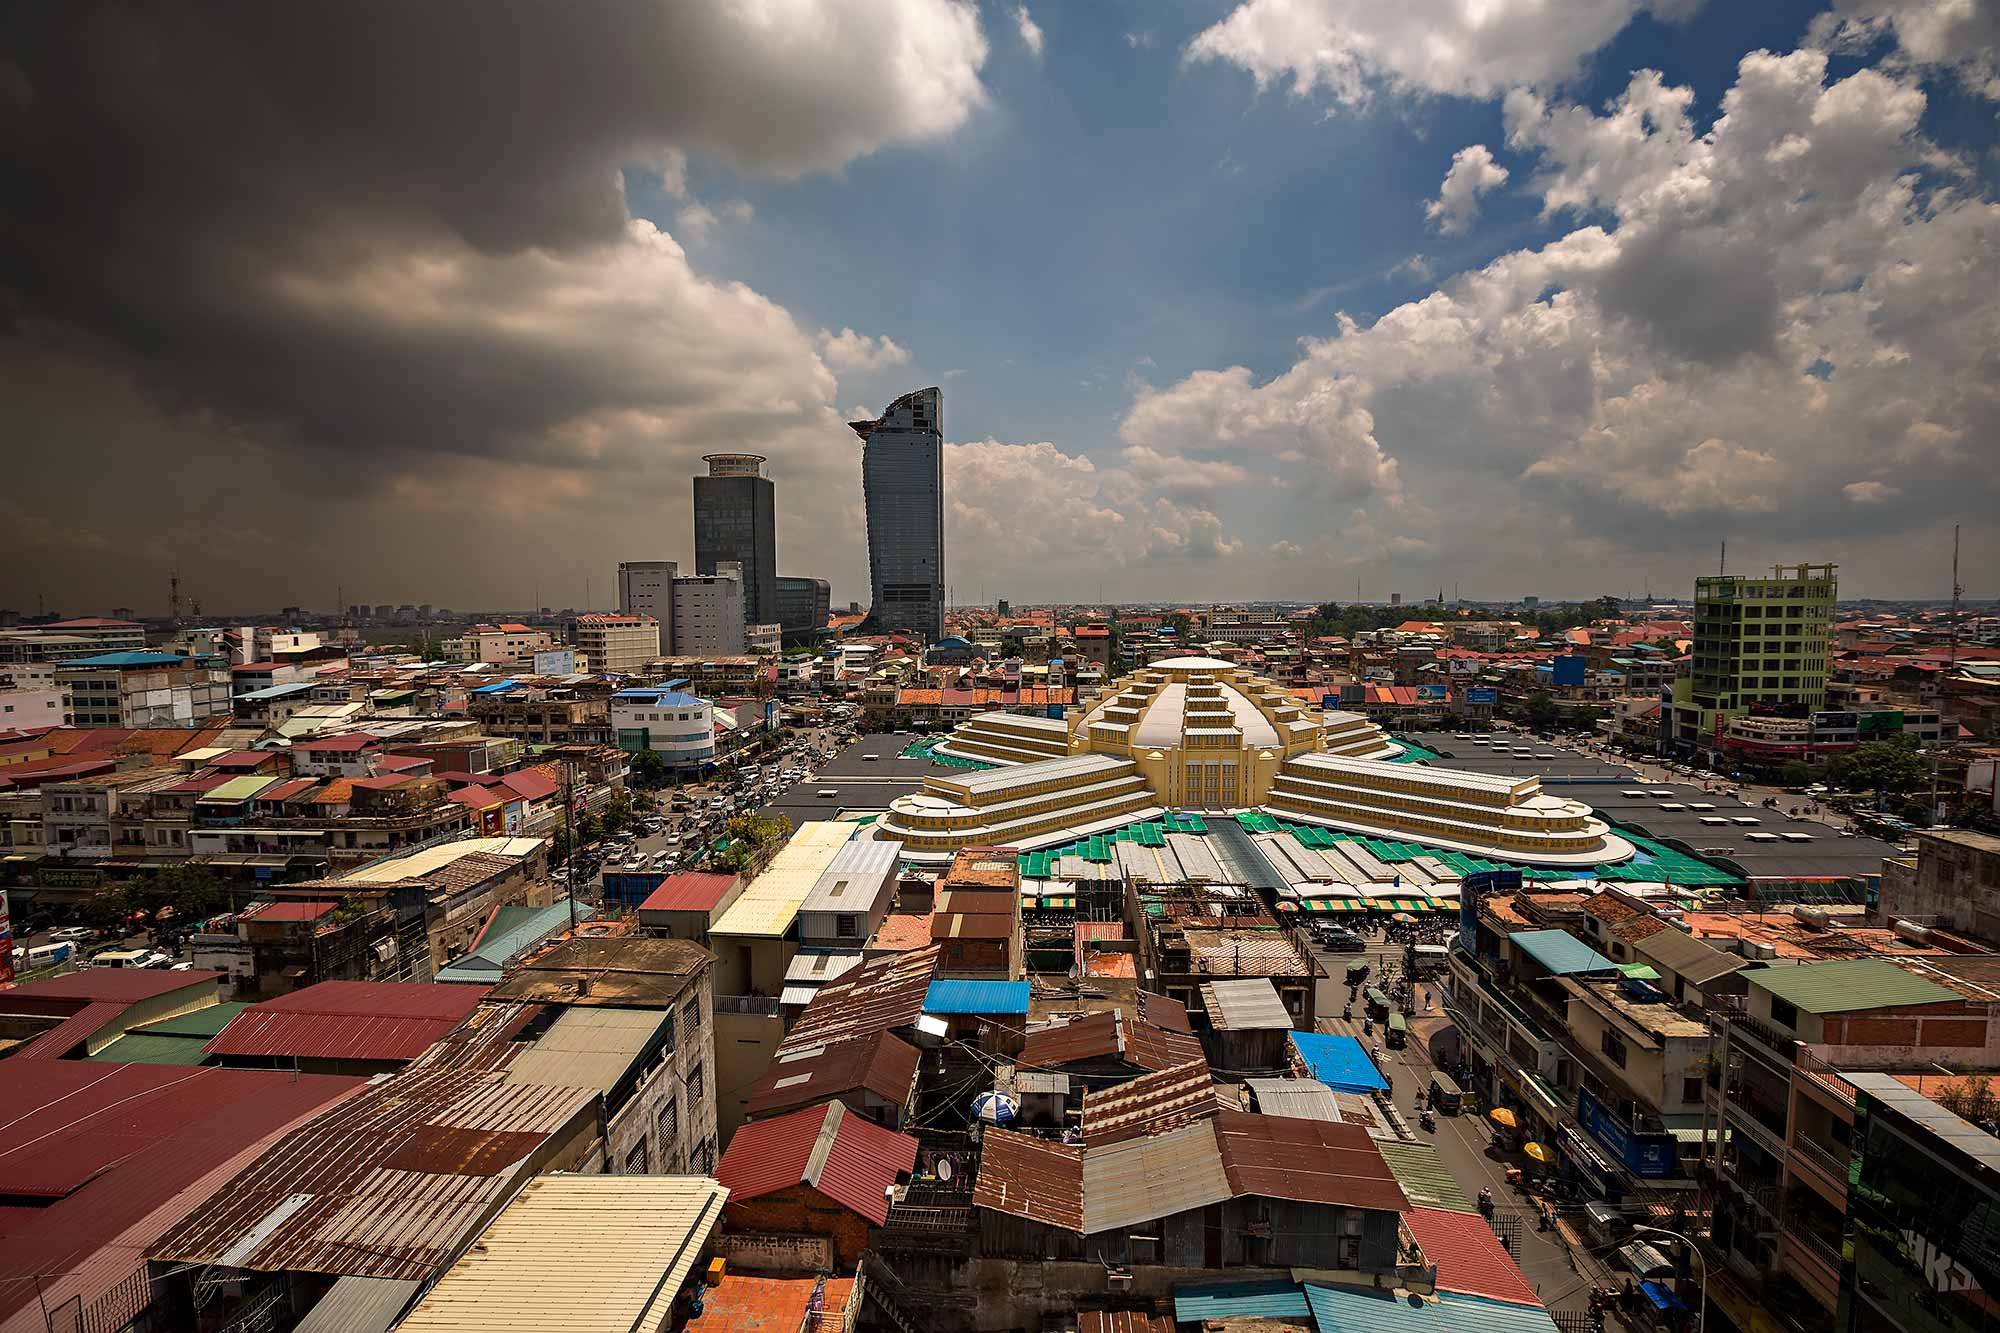 View of the Central market - Phsar Thmei - in Phnom Penh, Cambodia. © Ulli Maier & Nisa Maier